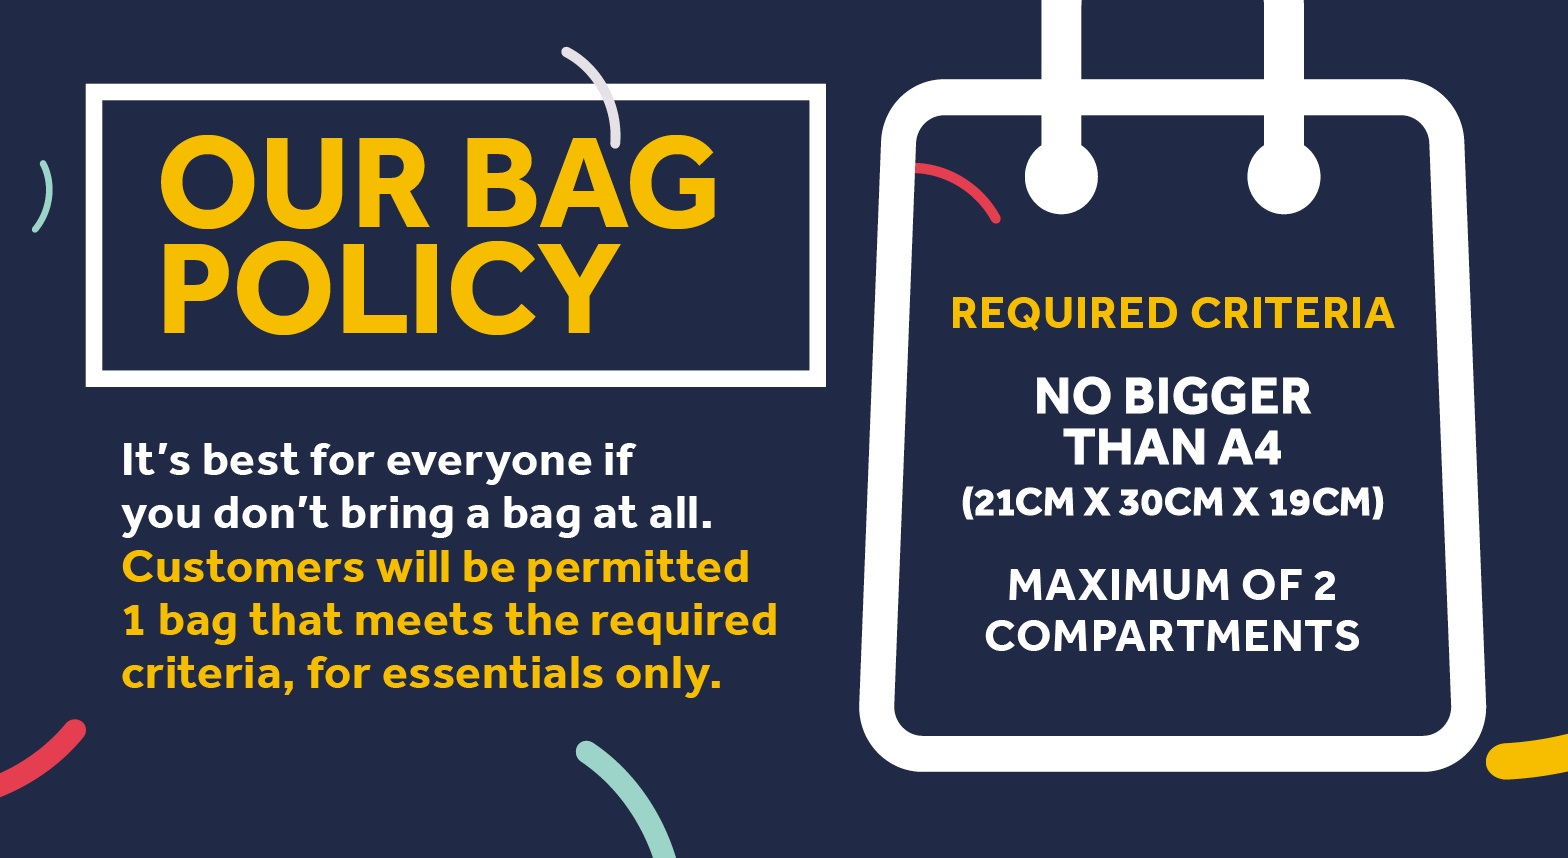 AR001054 - Back To Live - RWA Web Images_1568x858px_Bag Policy_AW.jpg